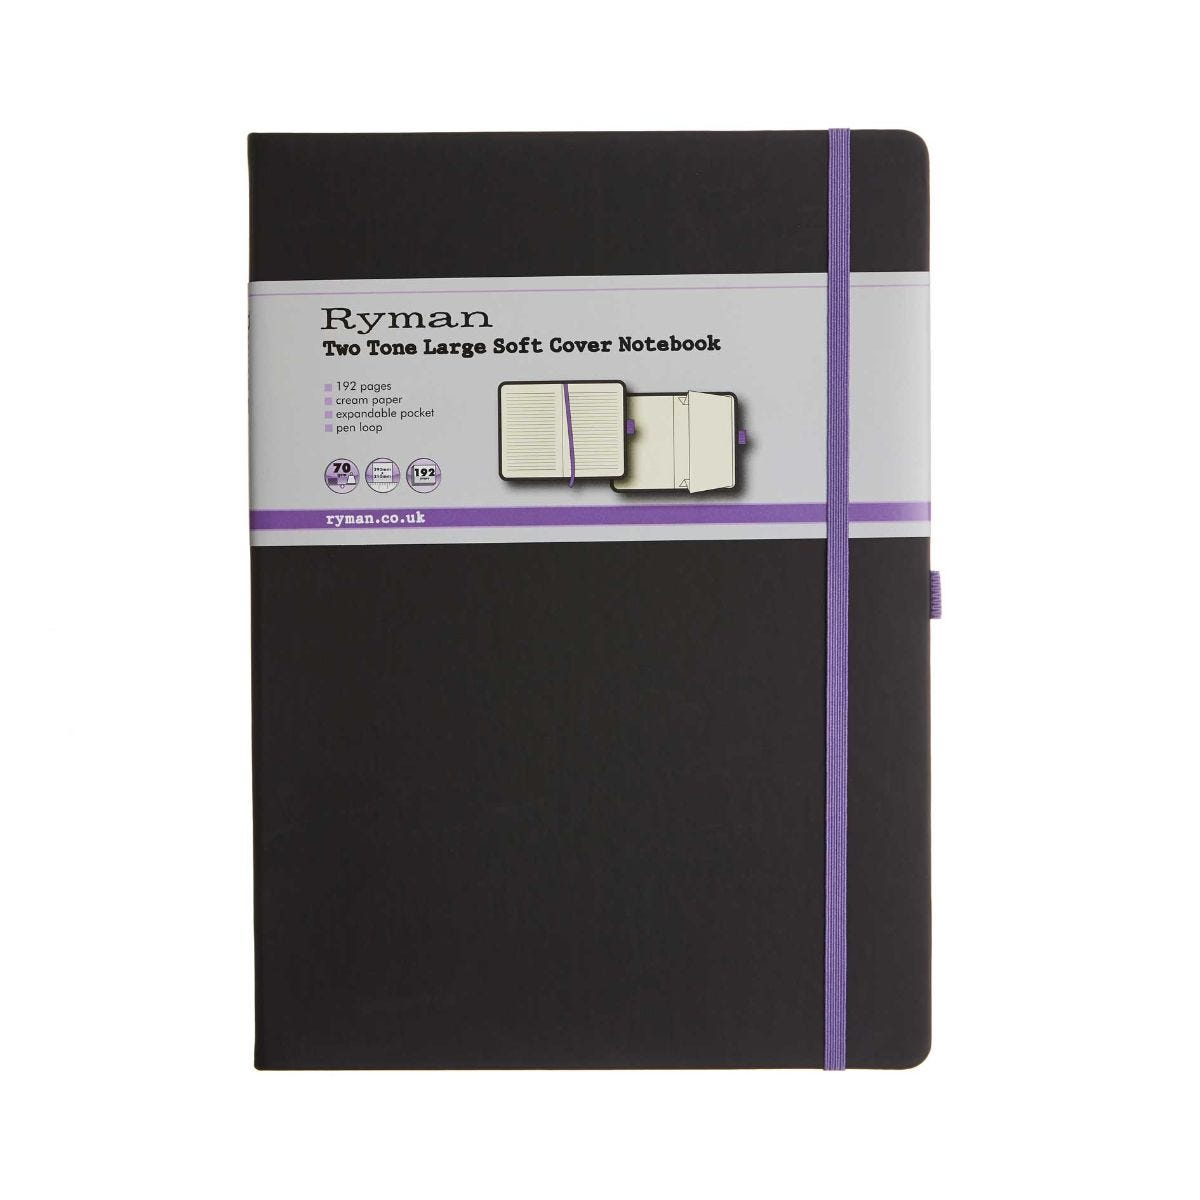 Ryman SoftCover Notebook Large Ruled 192 Page, Black/Purple.